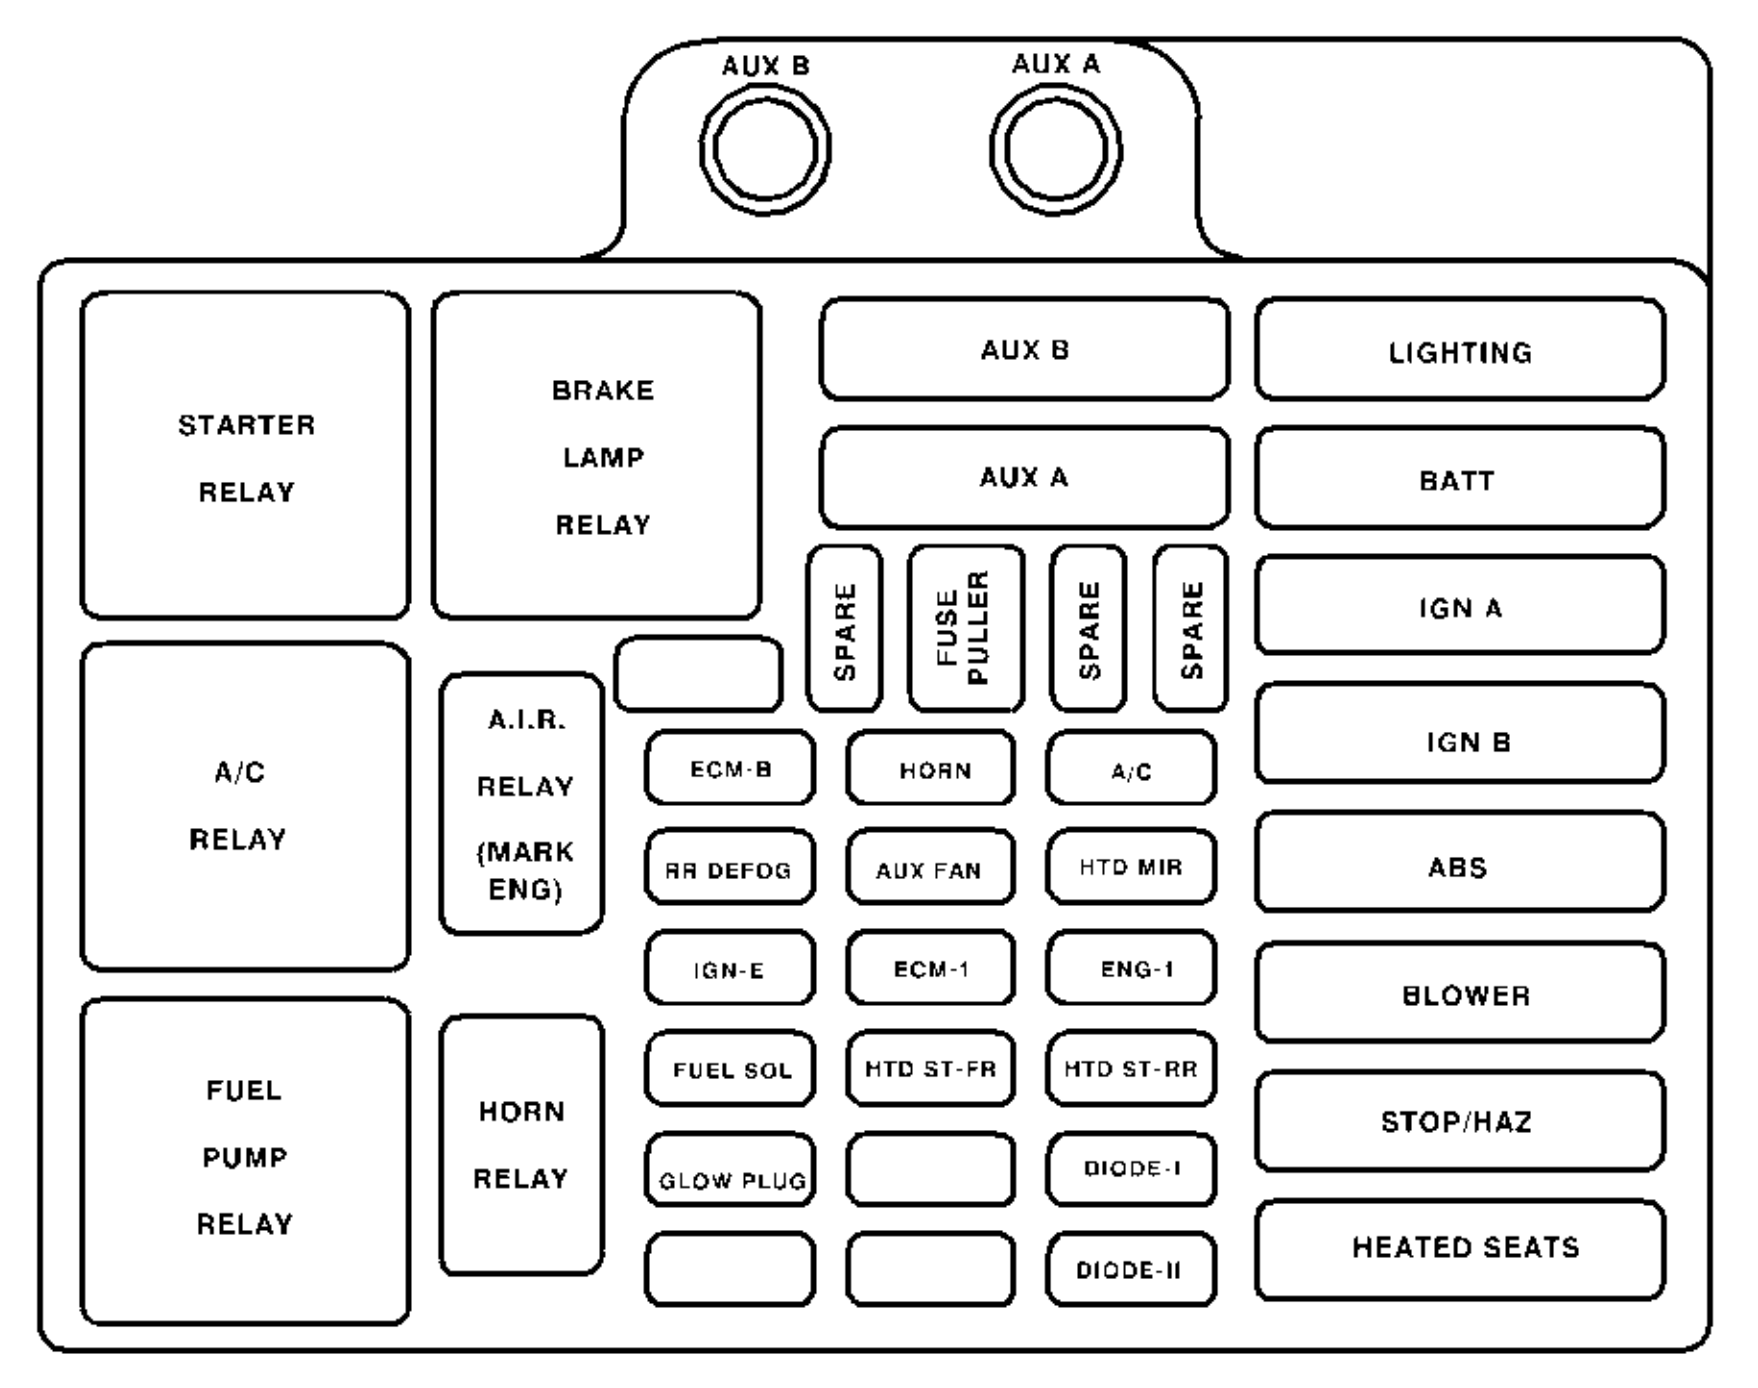 hight resolution of 98 chevy fuse diagram wiring diagram sheet 98 tahoe fuse box diagram 98 tahoe fuse diagram